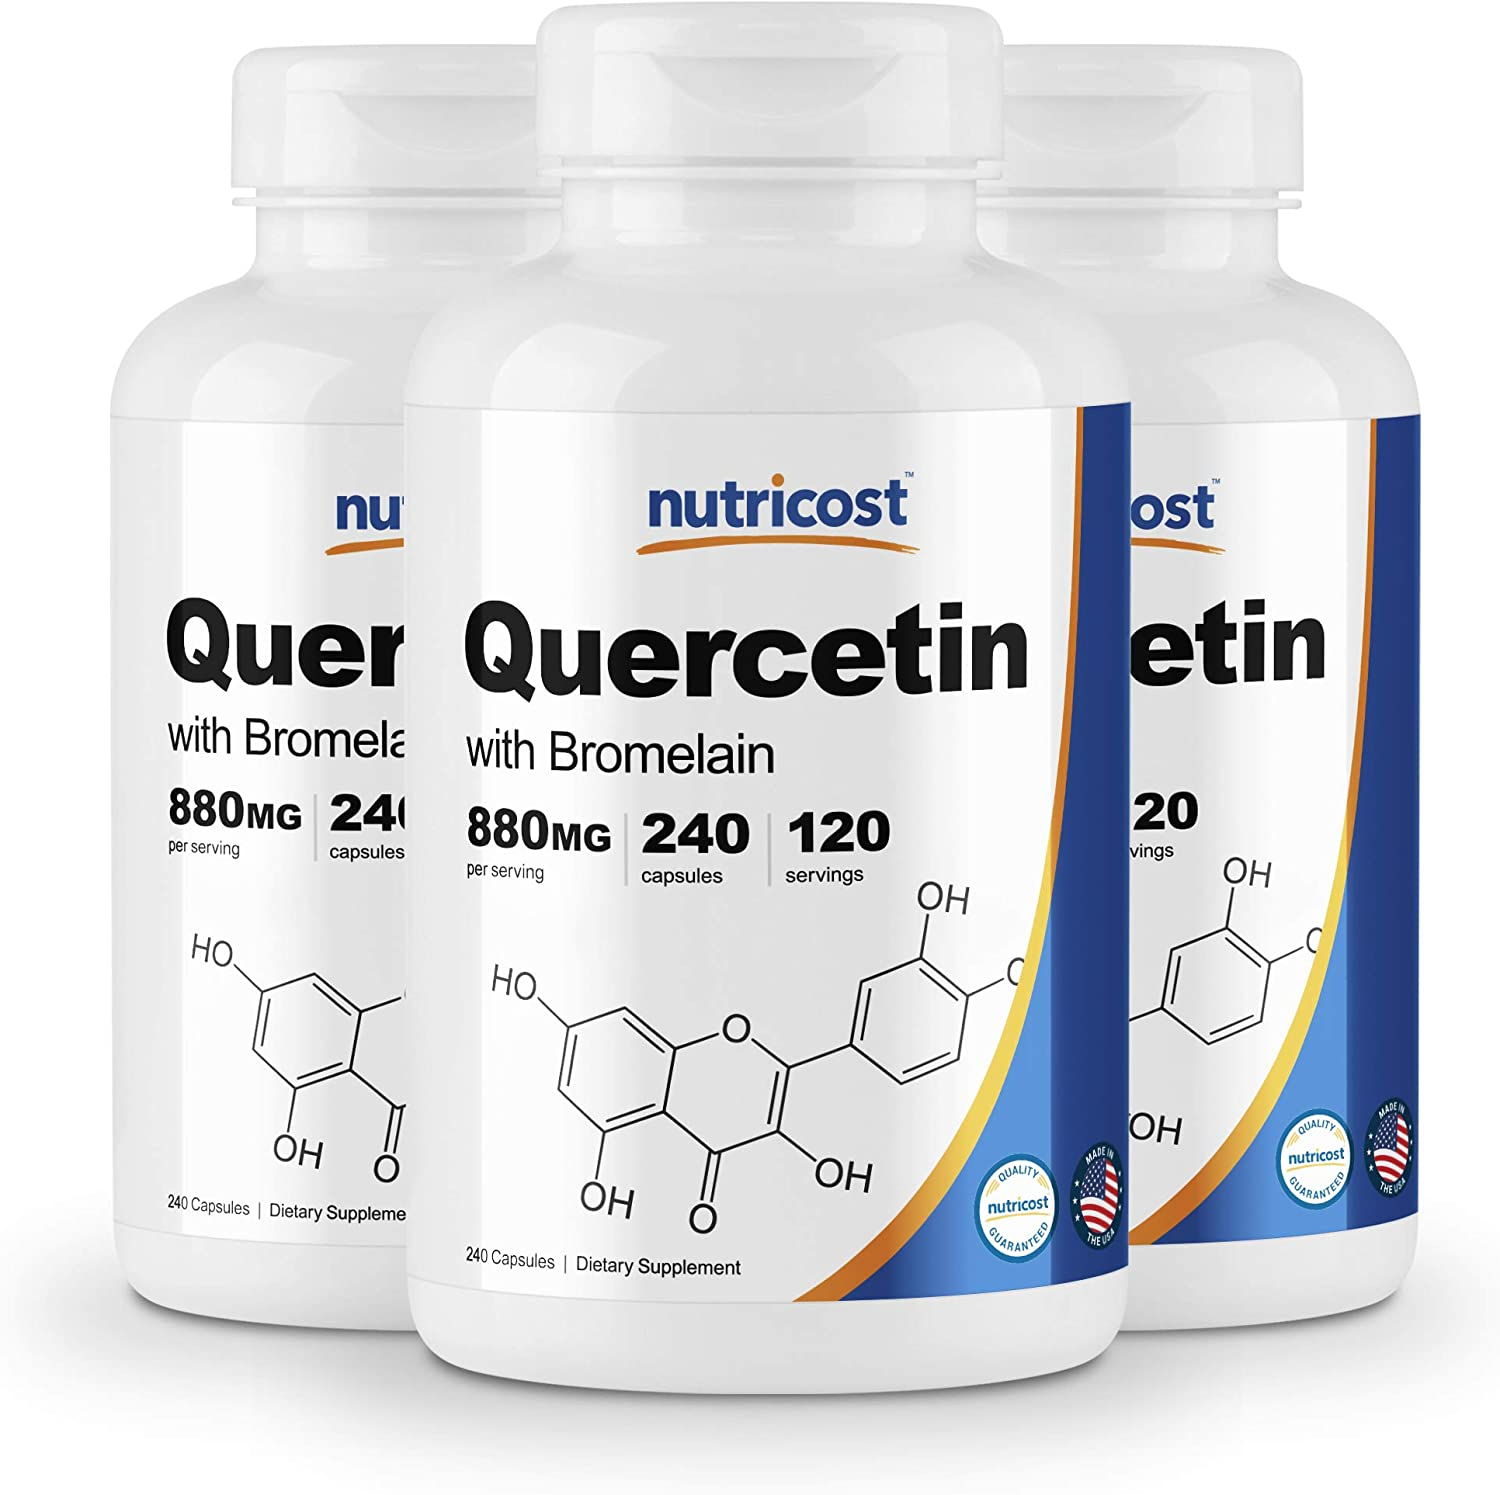 Nutricost Quercetin 880mg, 240 Caps with Bromelain 3 Bottles